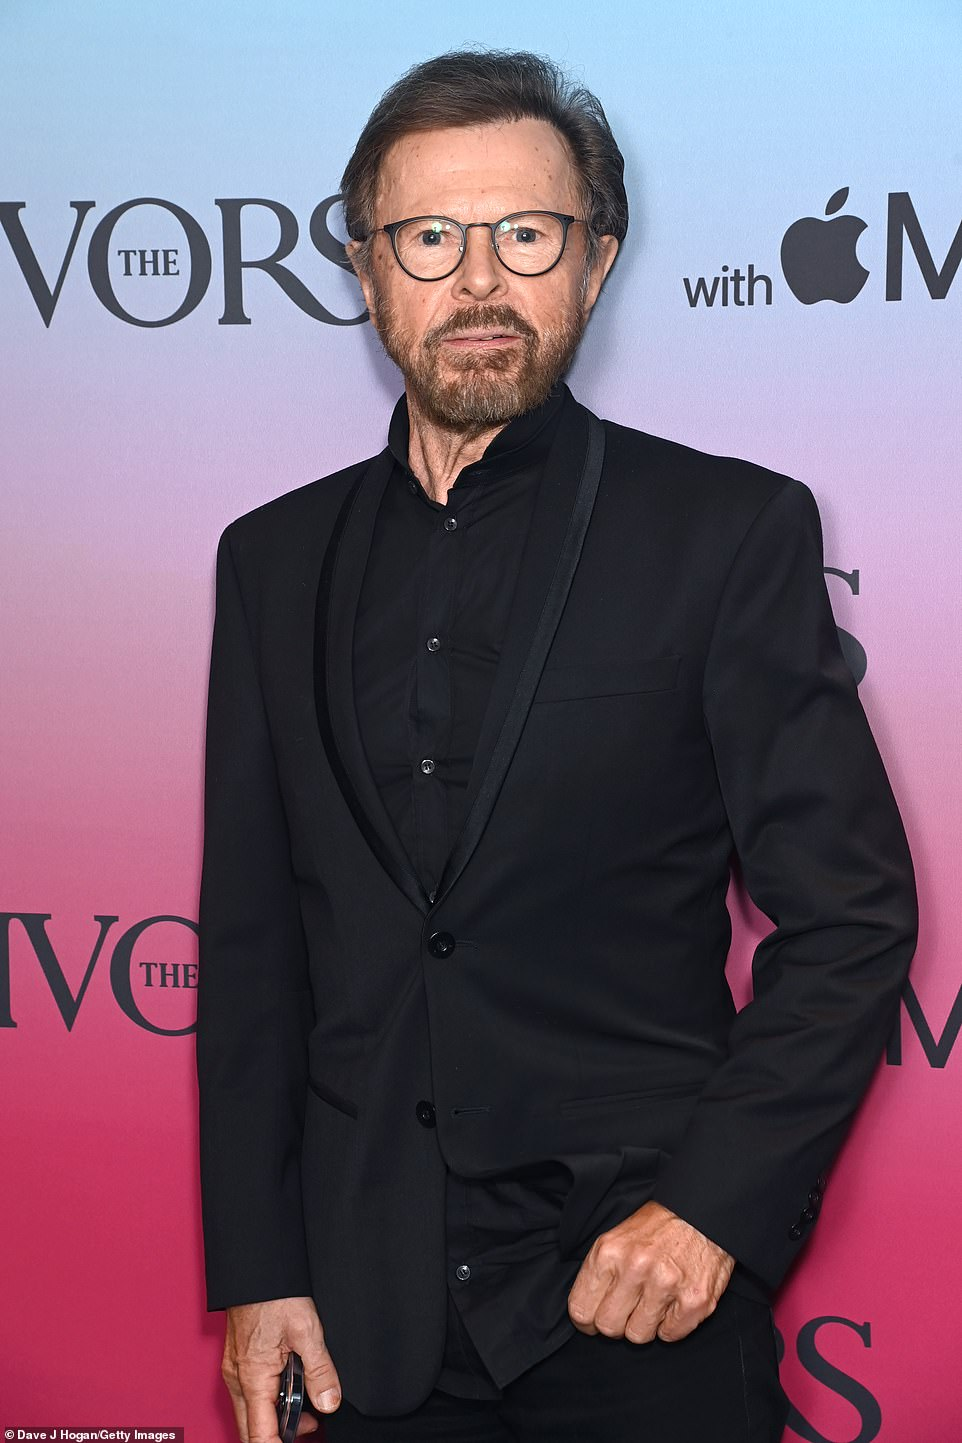 Here he is! ABBA starBjorn Ulvaeus was in attendance in a sleek black suit in the wake of news of the group's new music